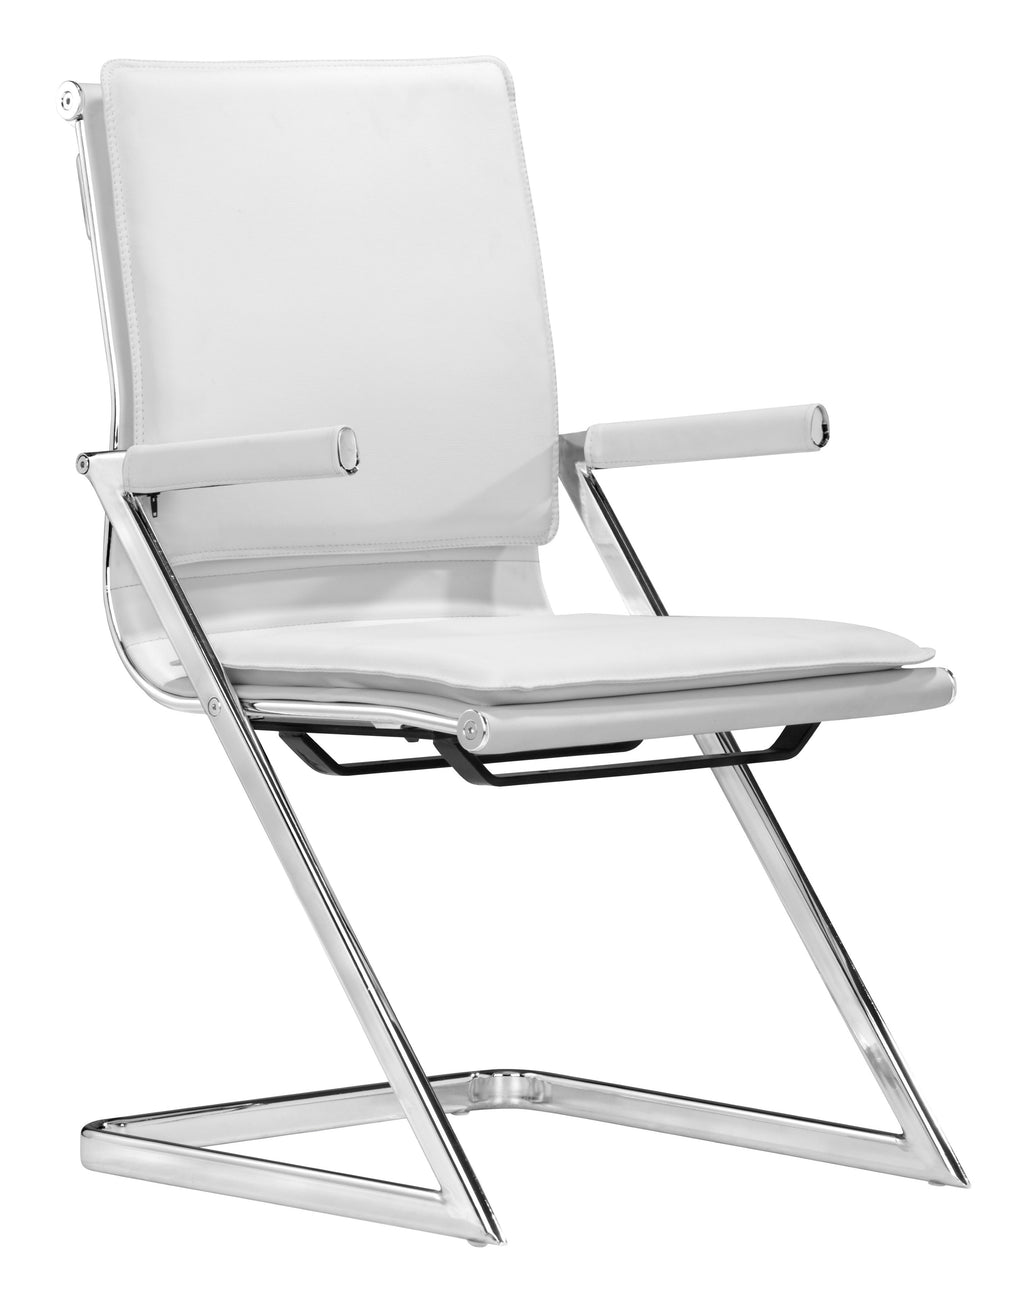 Lider Plus Conference Chair (White)